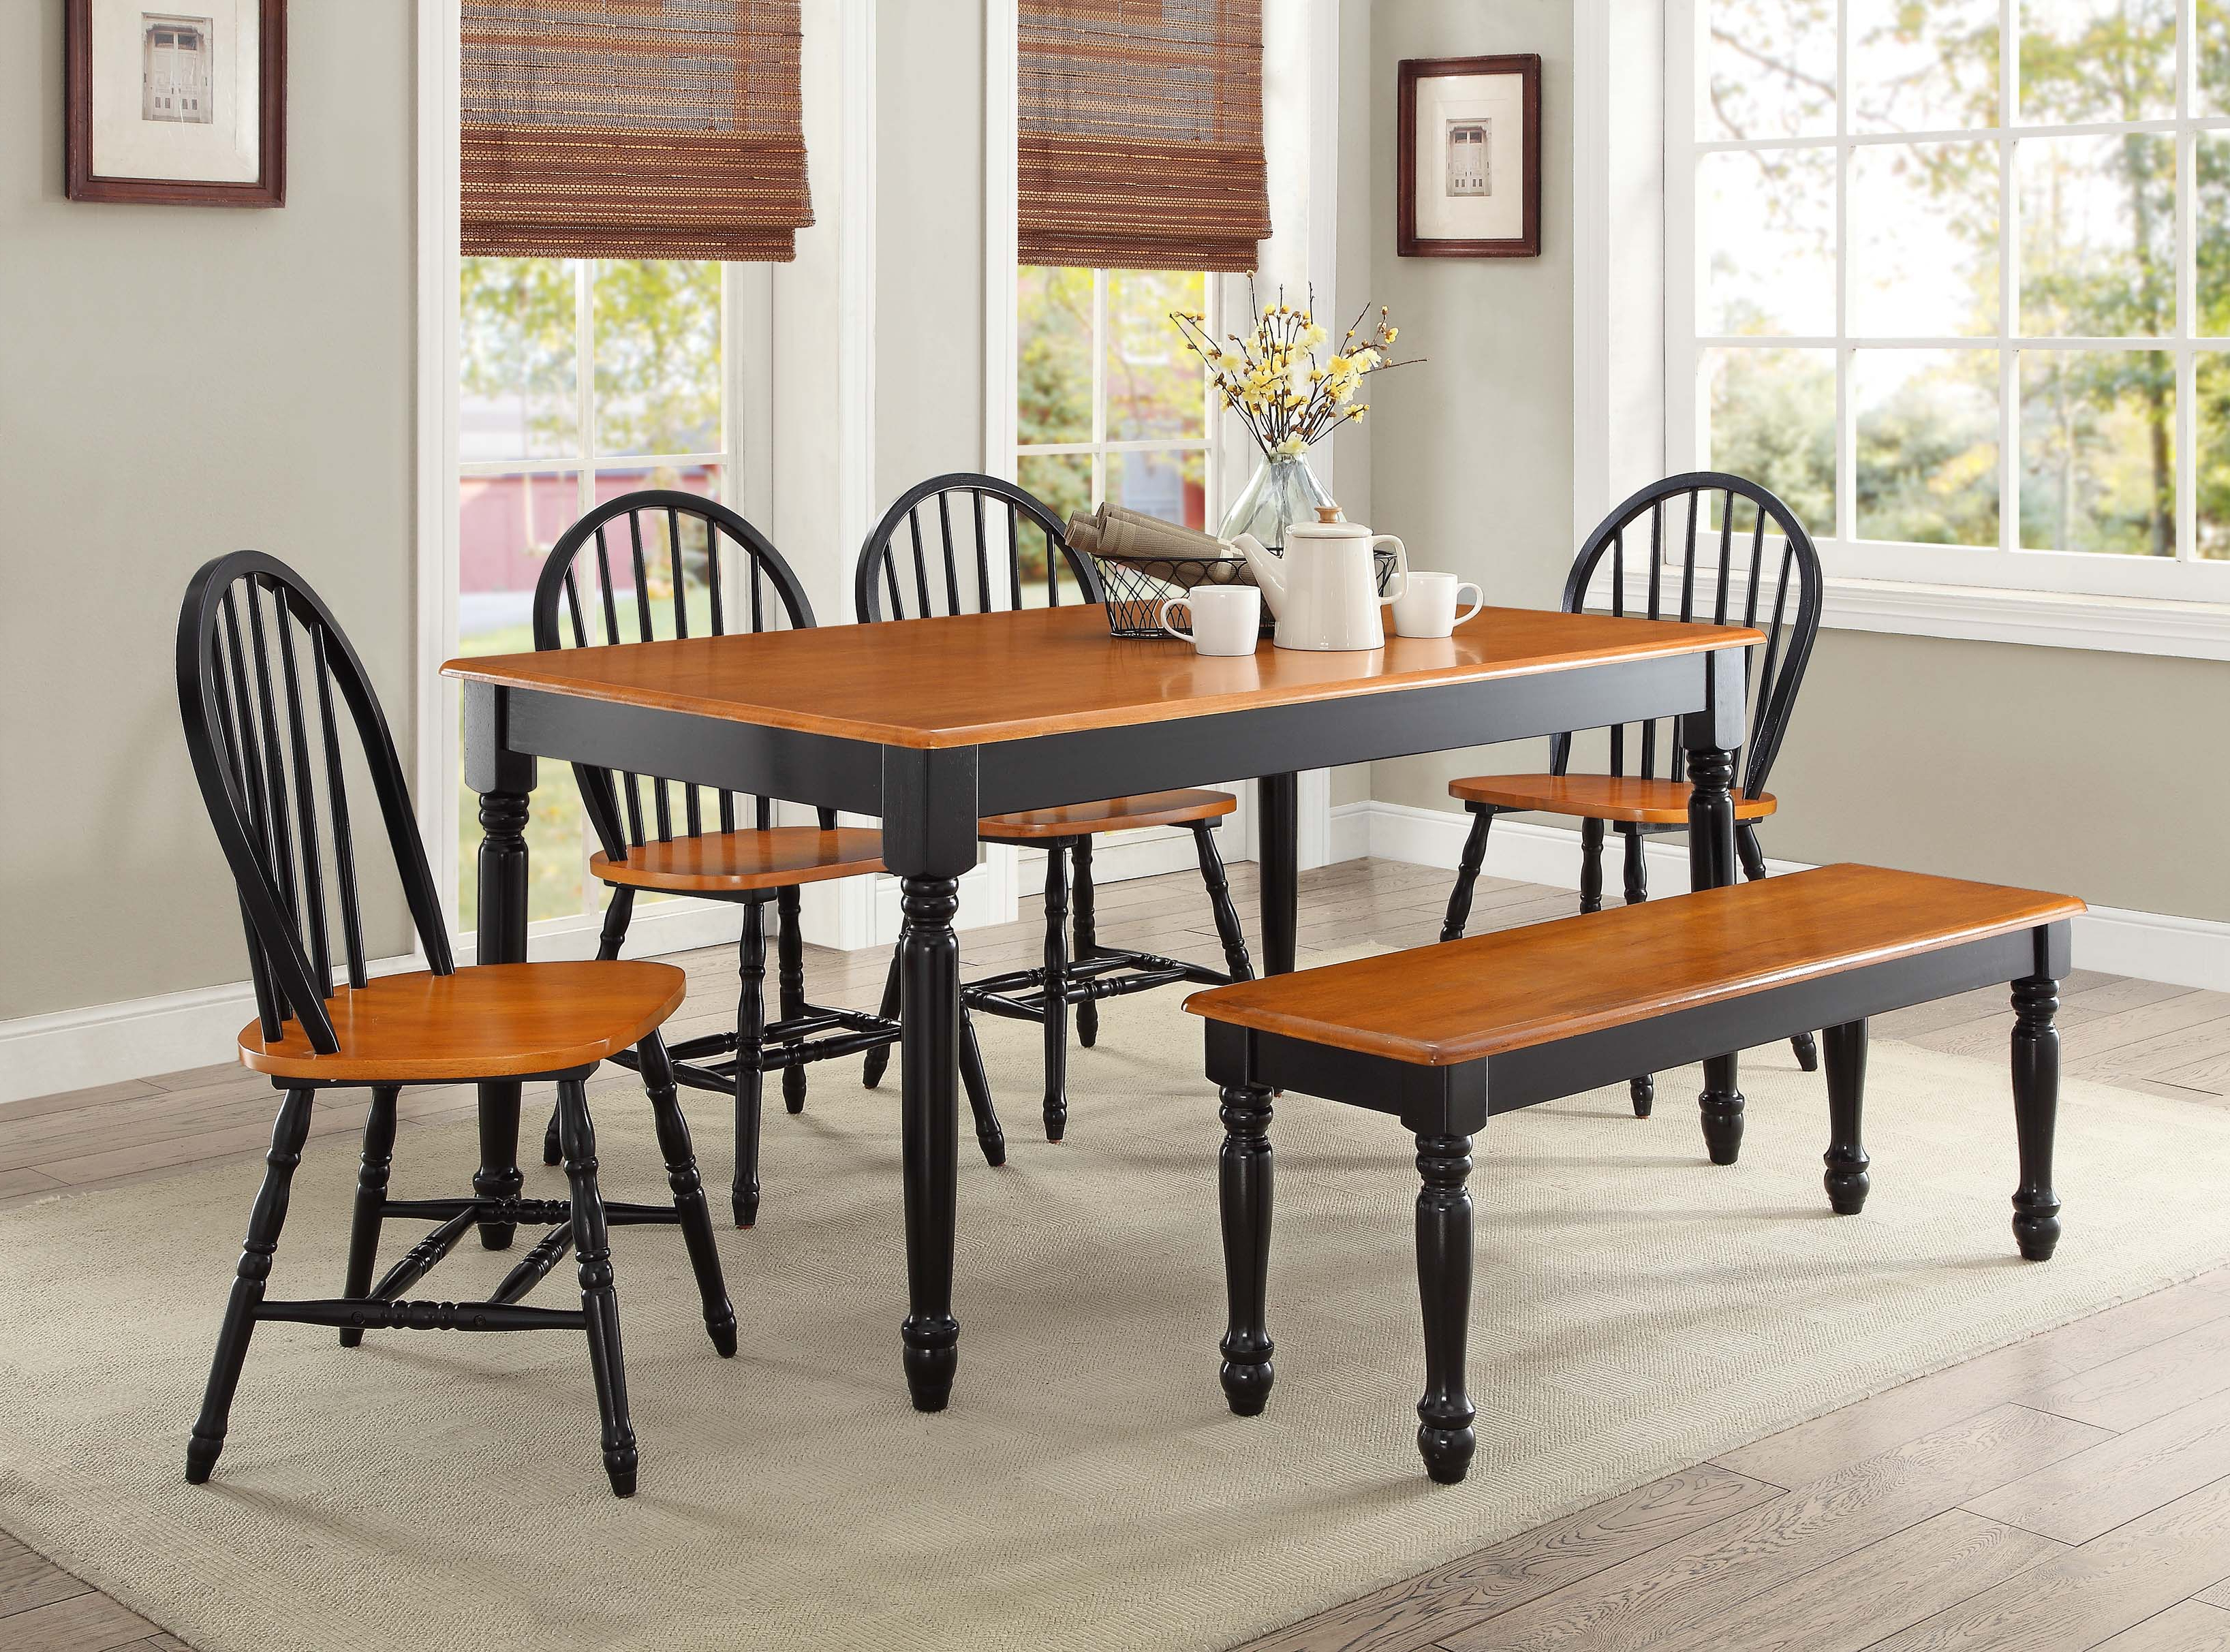 Northwoods 3 Piece Dining Sets for Well-liked Black Dinner Table Set & Black Dining Room Table U2013 Why You